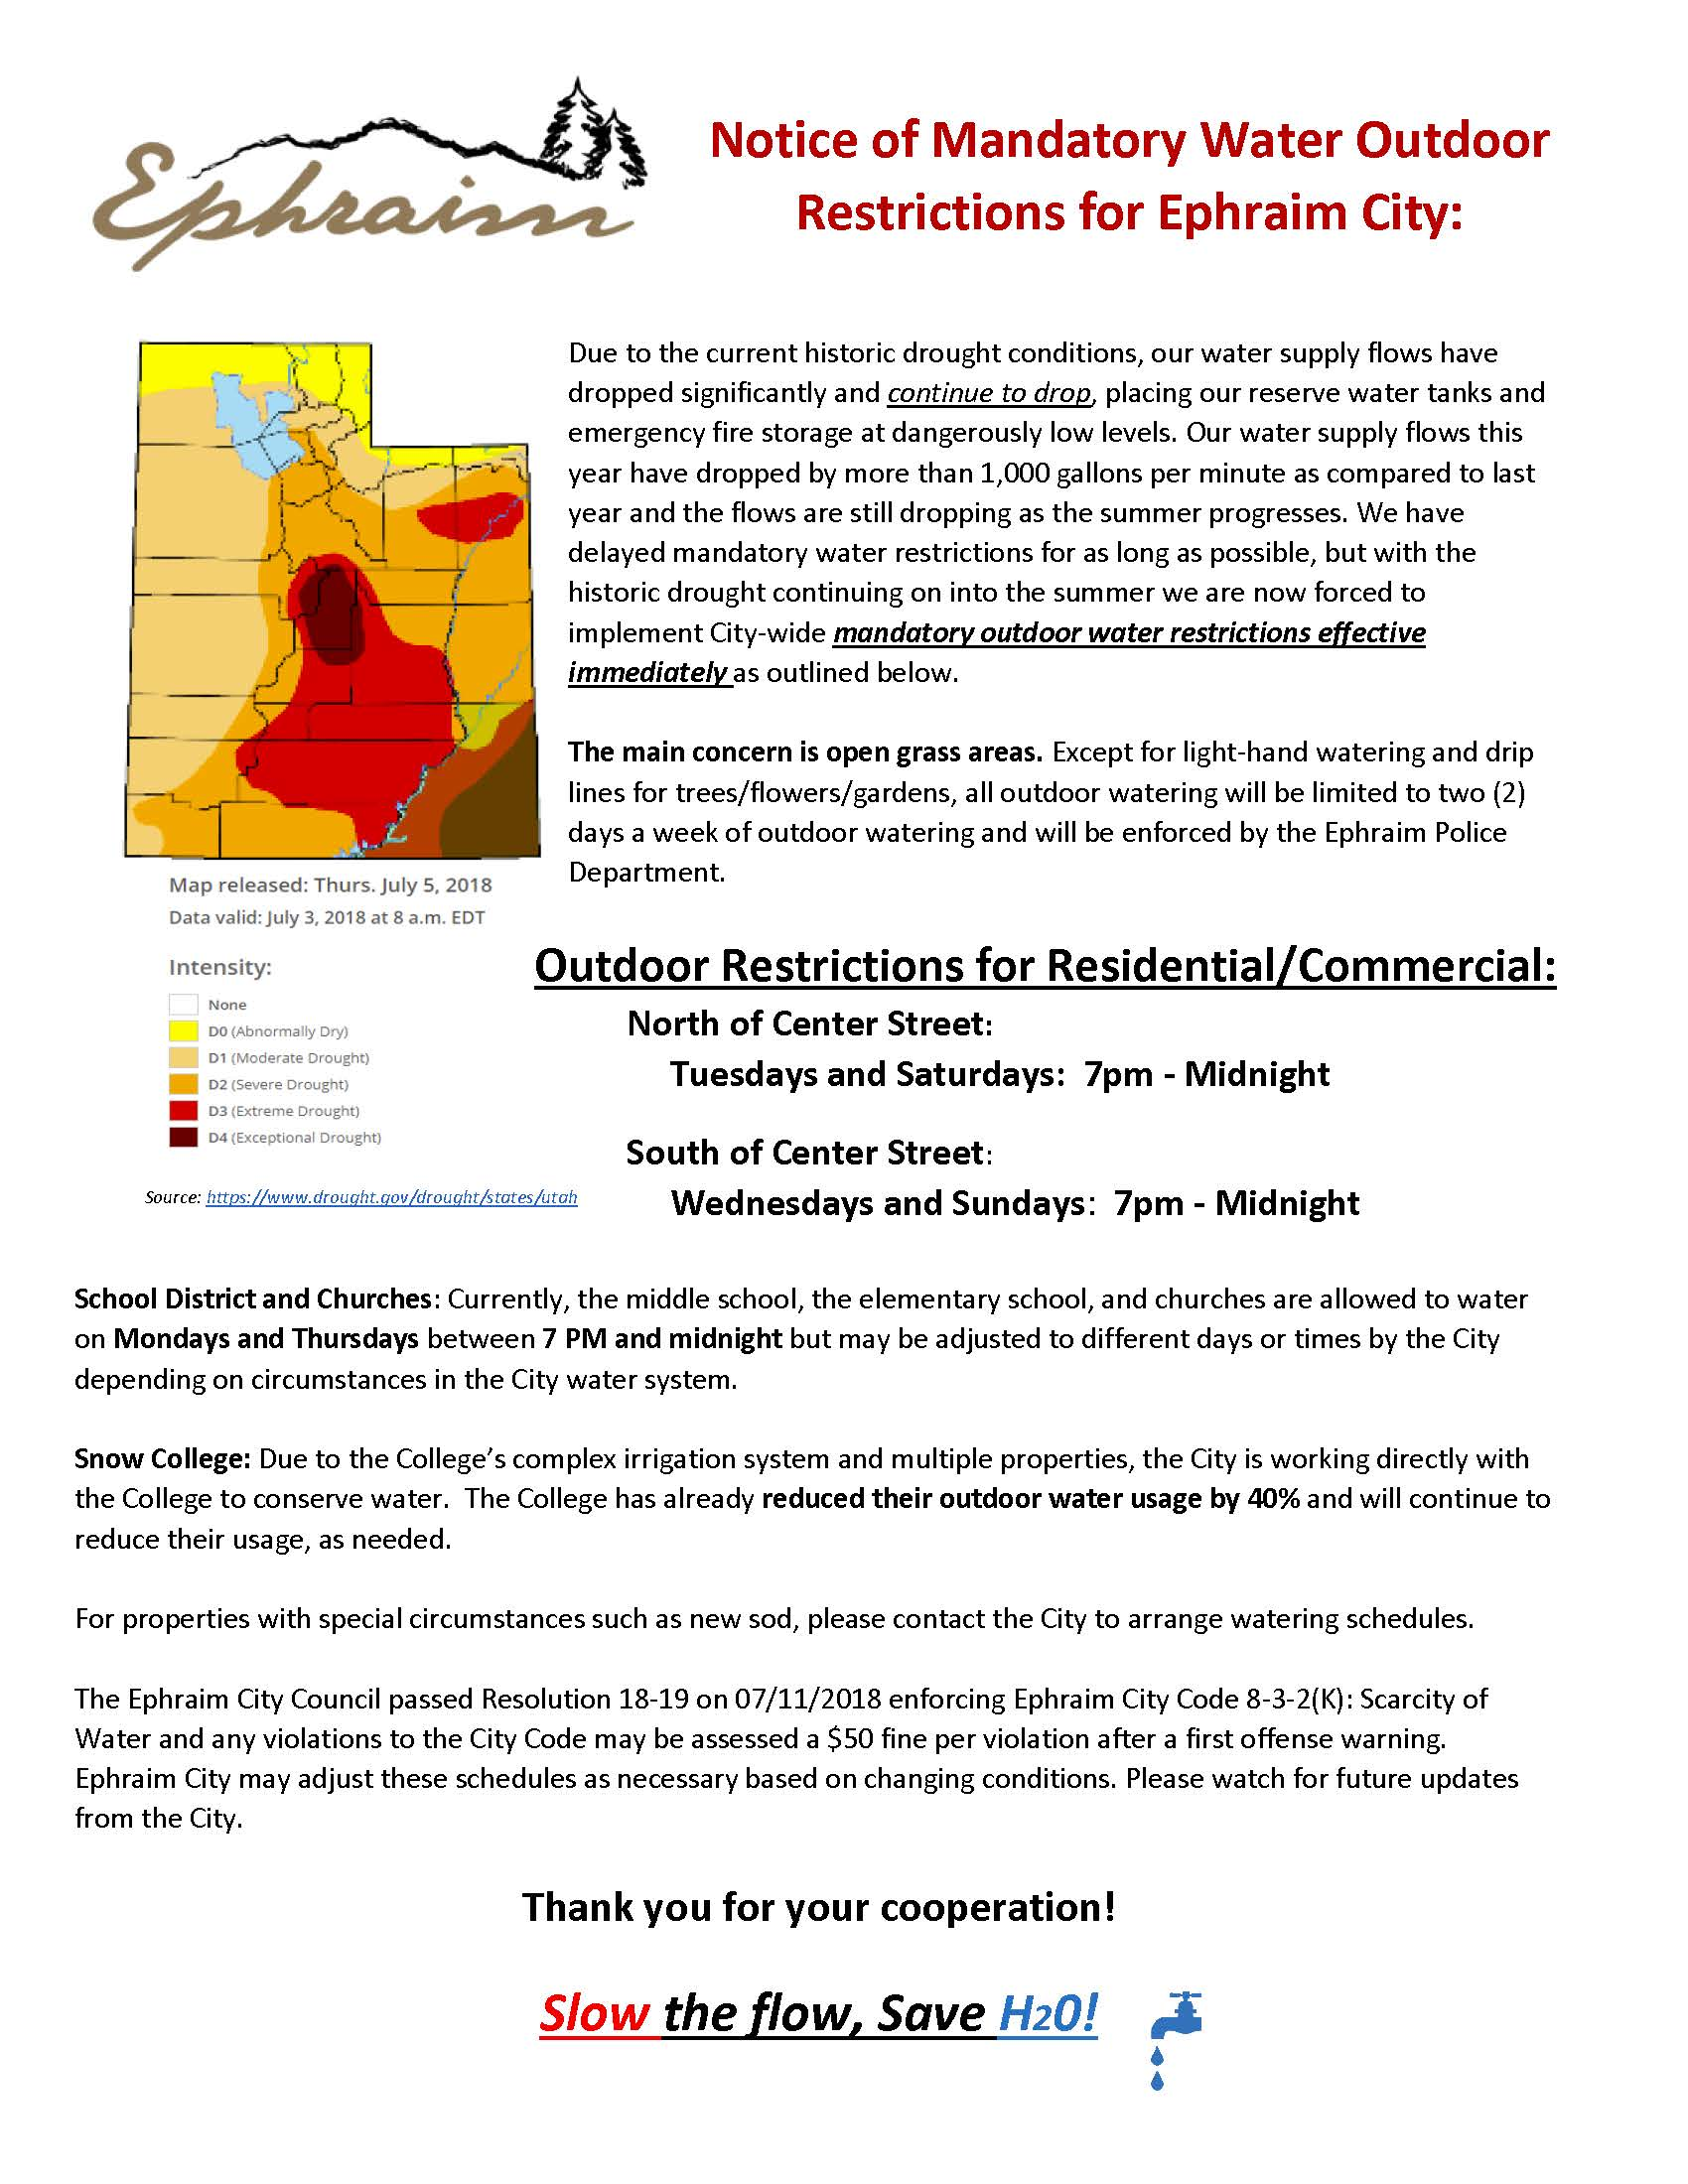 Notice of Mandatory Water Outdoor Restrictions Ephraim, Historic Drought